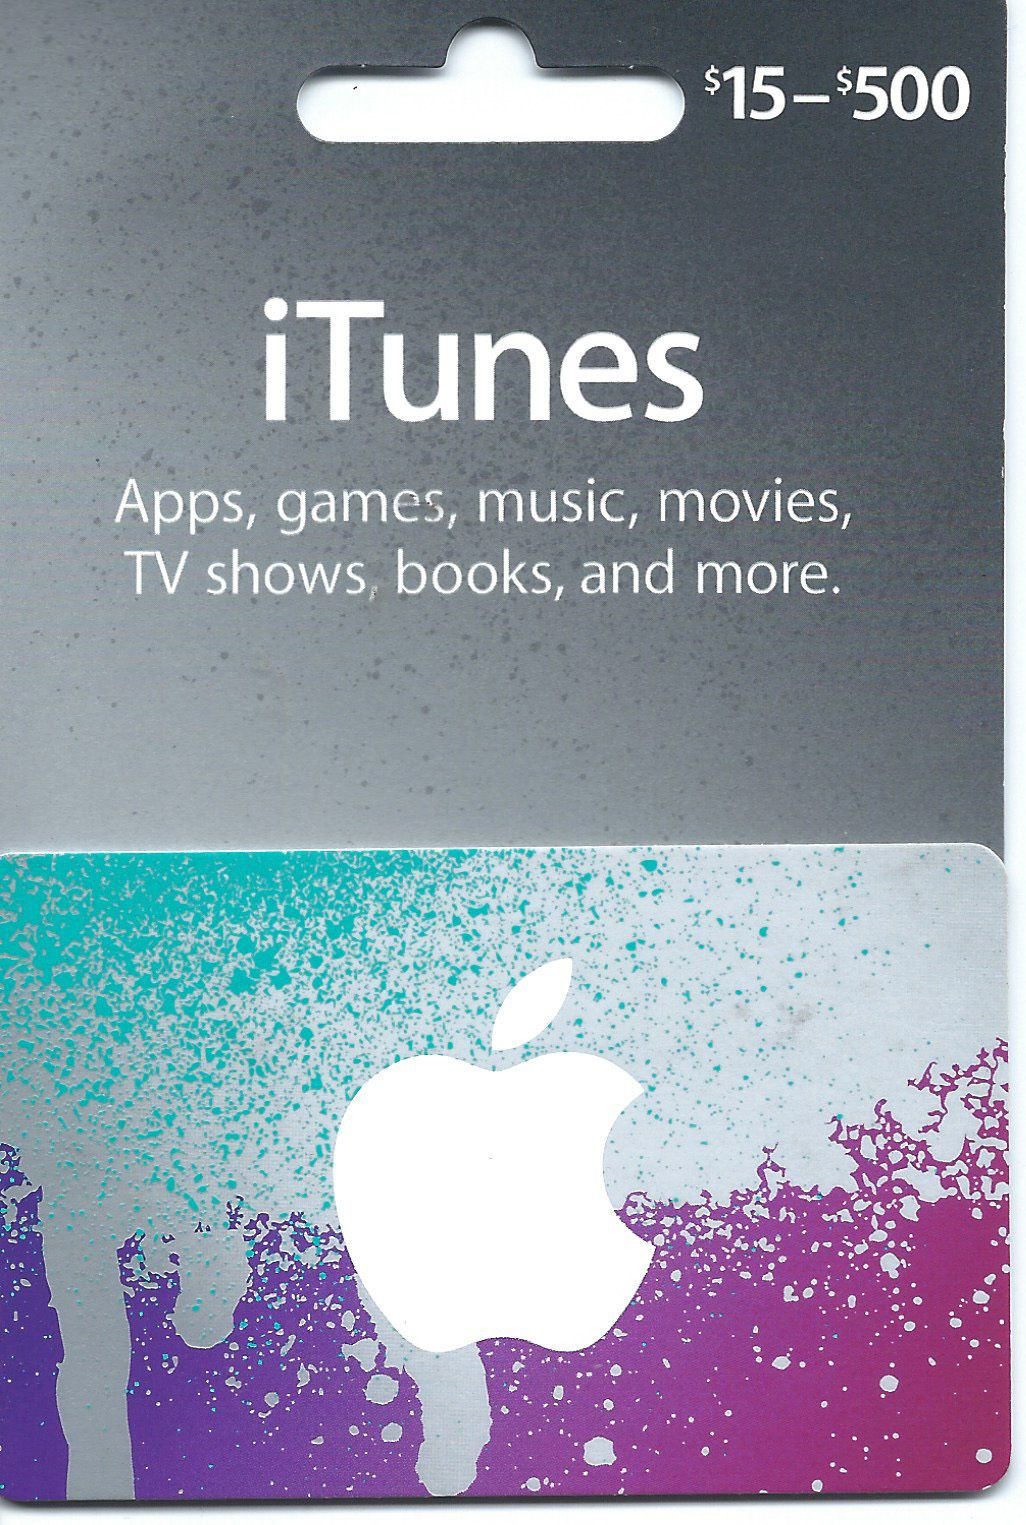 Httpsearchpromocodesubapple Itunes 500 00 Gift Card 2 Top